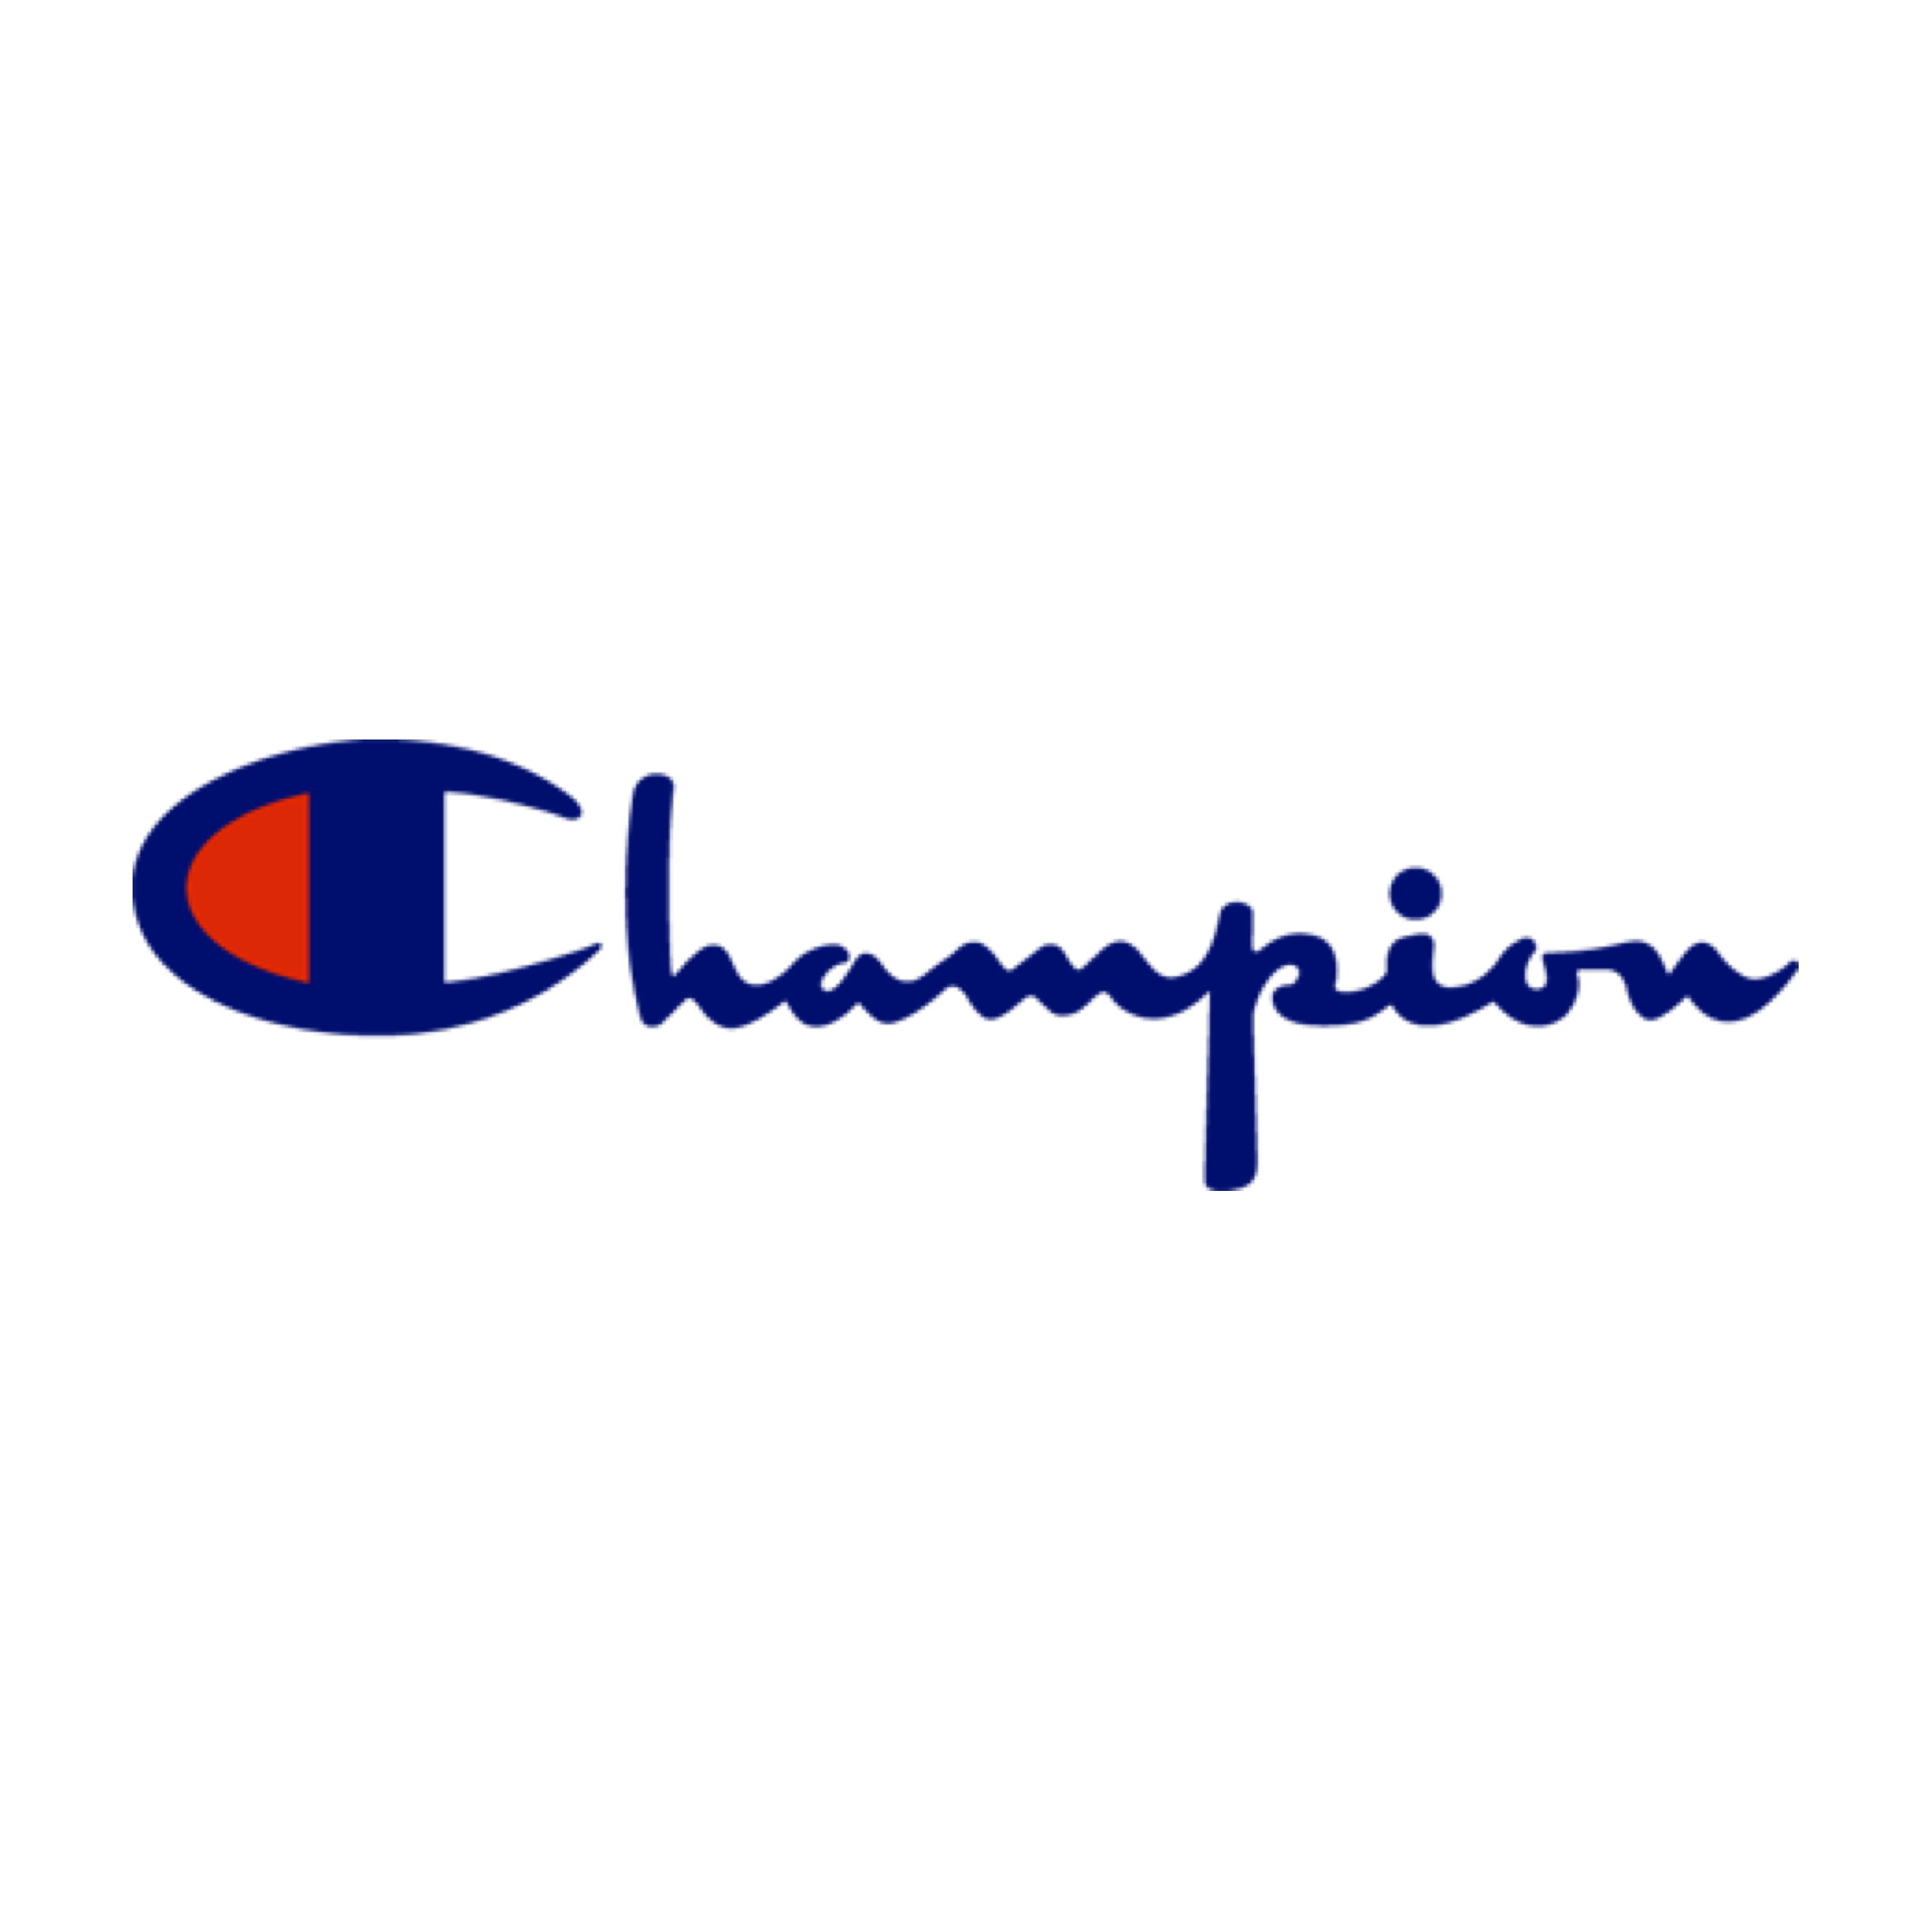 2448x2448 Champion in 2019 | Clothing brand logos, Champion brand ...